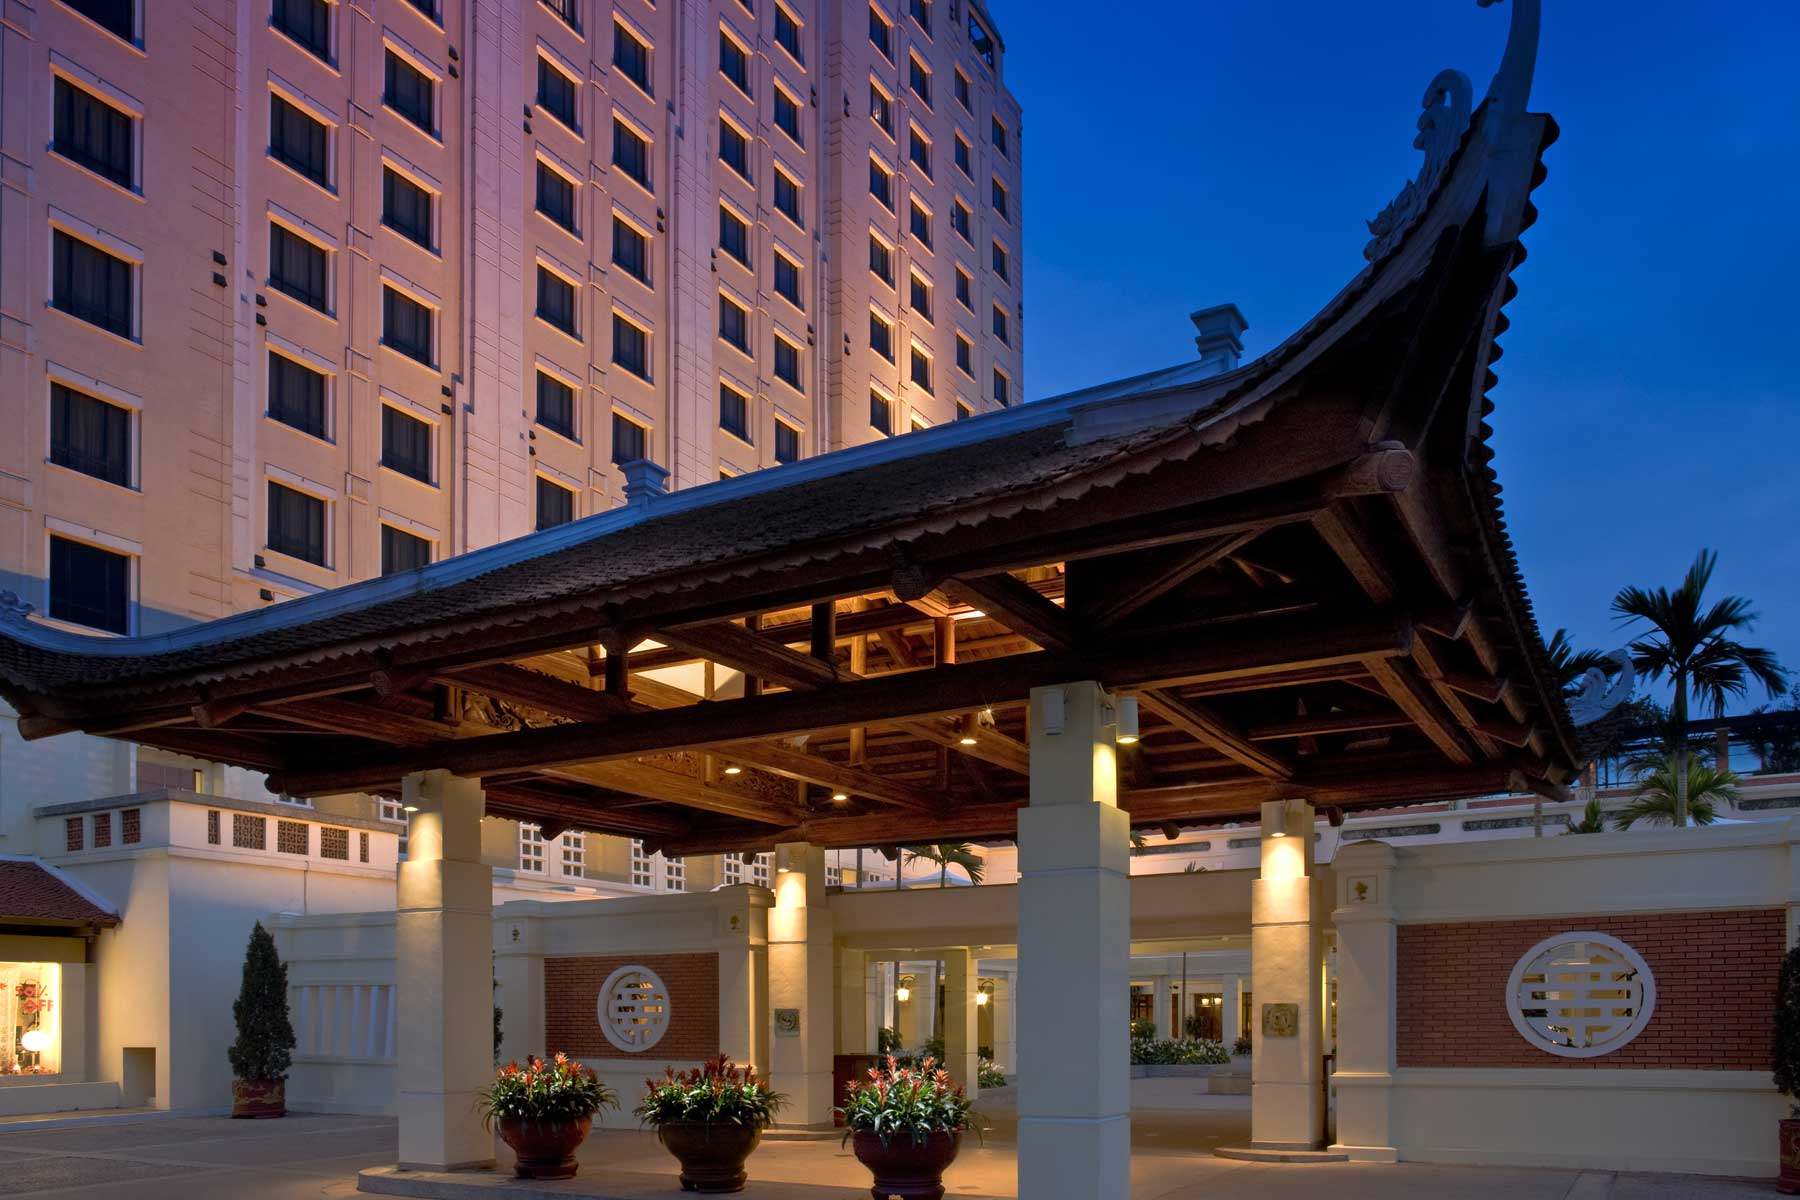 Sheraton Hanoi Hotel - Close to the bustle and excitement of the city, Sheraton Hanoi Hotel is surrounded by lush gardens, sweeping lawns and tranquil courtyards. This peaceful oasis features picturesque views of West Lake and is less than 10 minutes from downtown Hanoi.